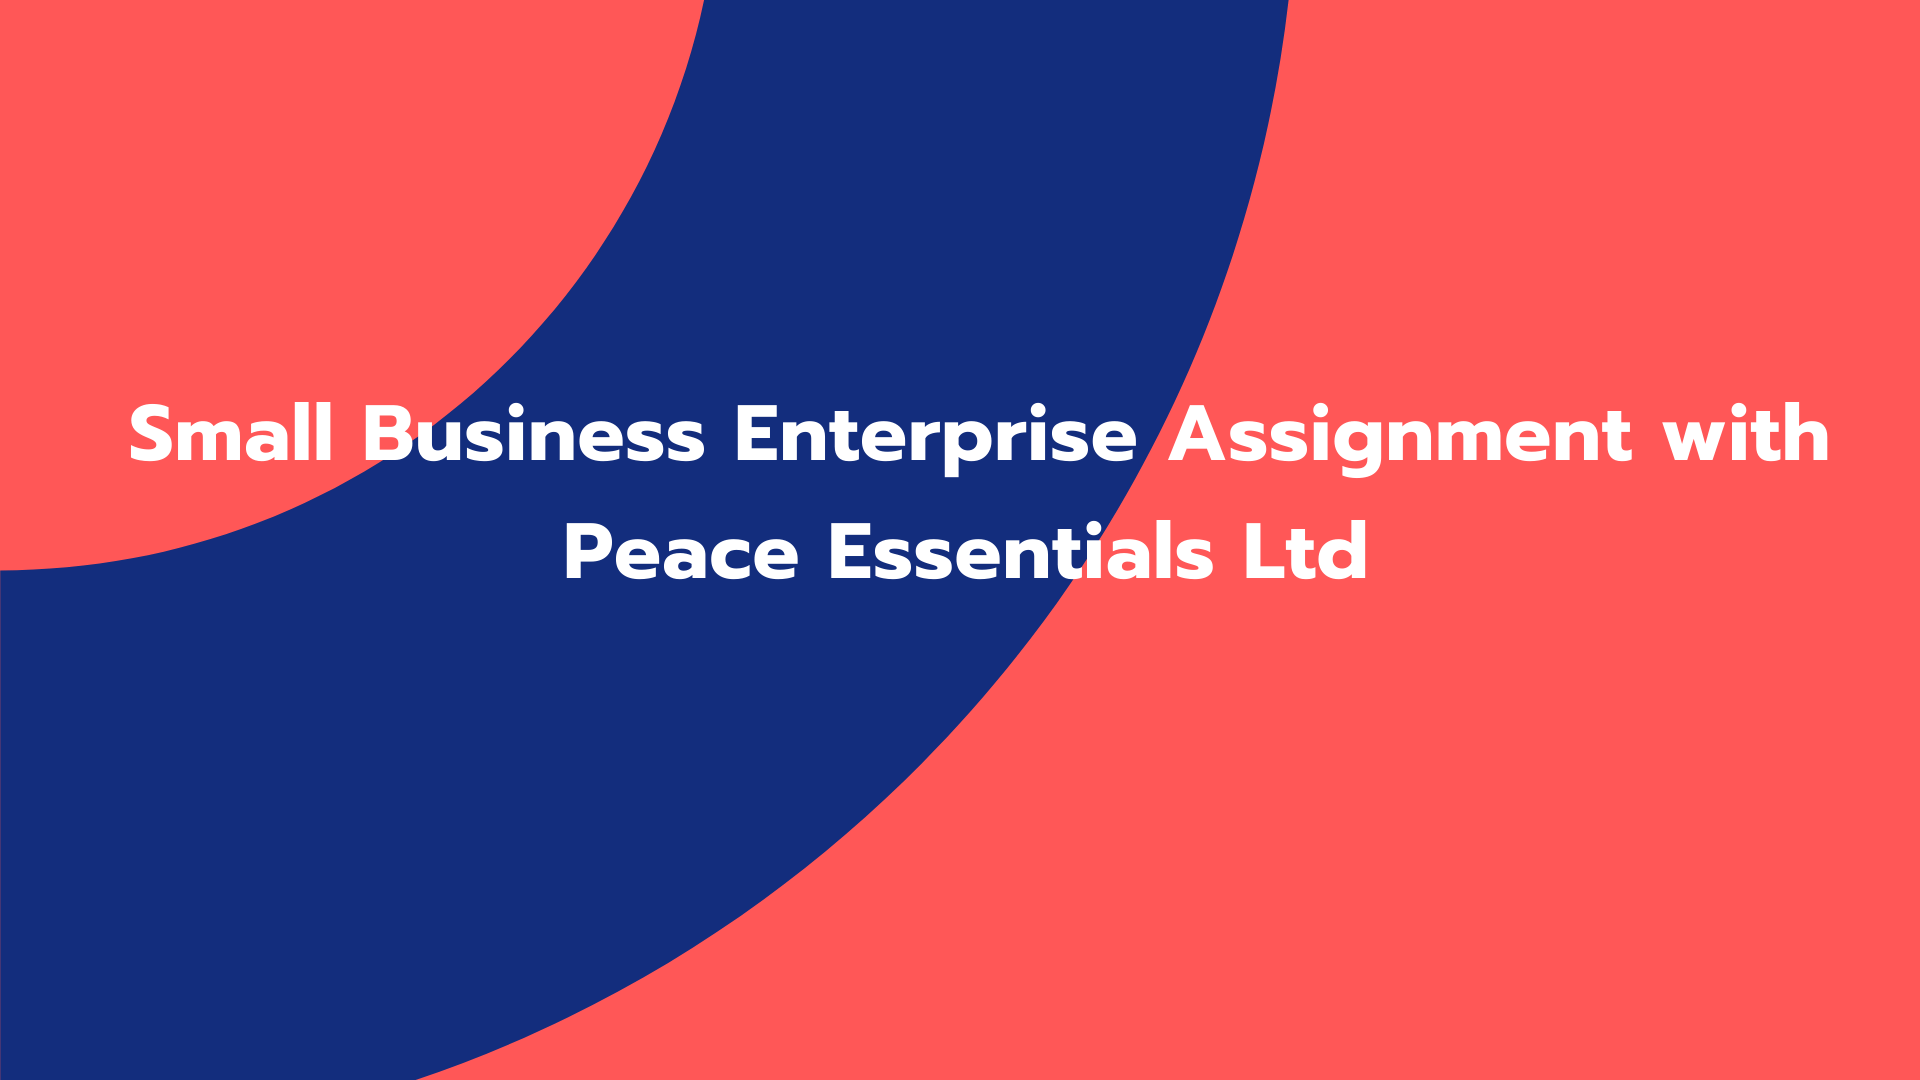 Small Business Enterprise Assignment with Peace Essentials Ltd